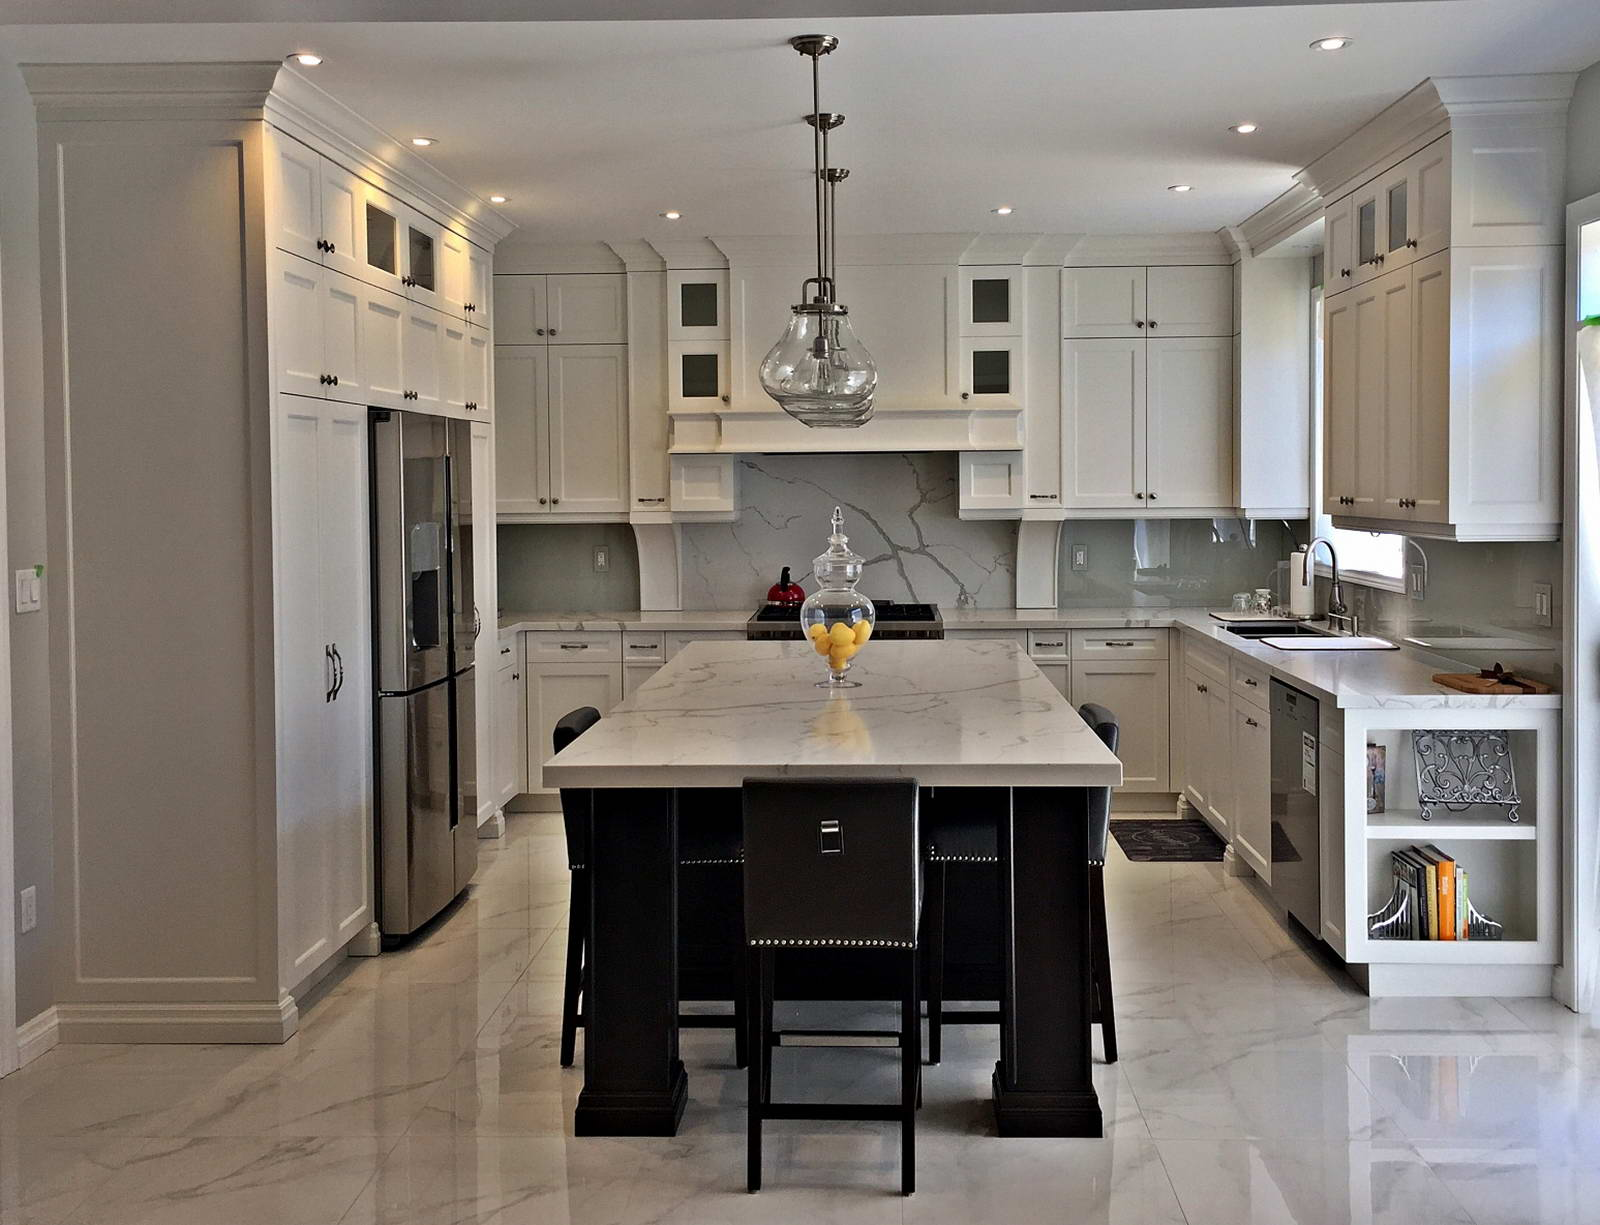 For a quote please call us at 905-614-1474 or simply fill out the form on the right. You also can visit us at our showroom. & Custom Kitchen Cabinets - Devon Fine Cabinetry